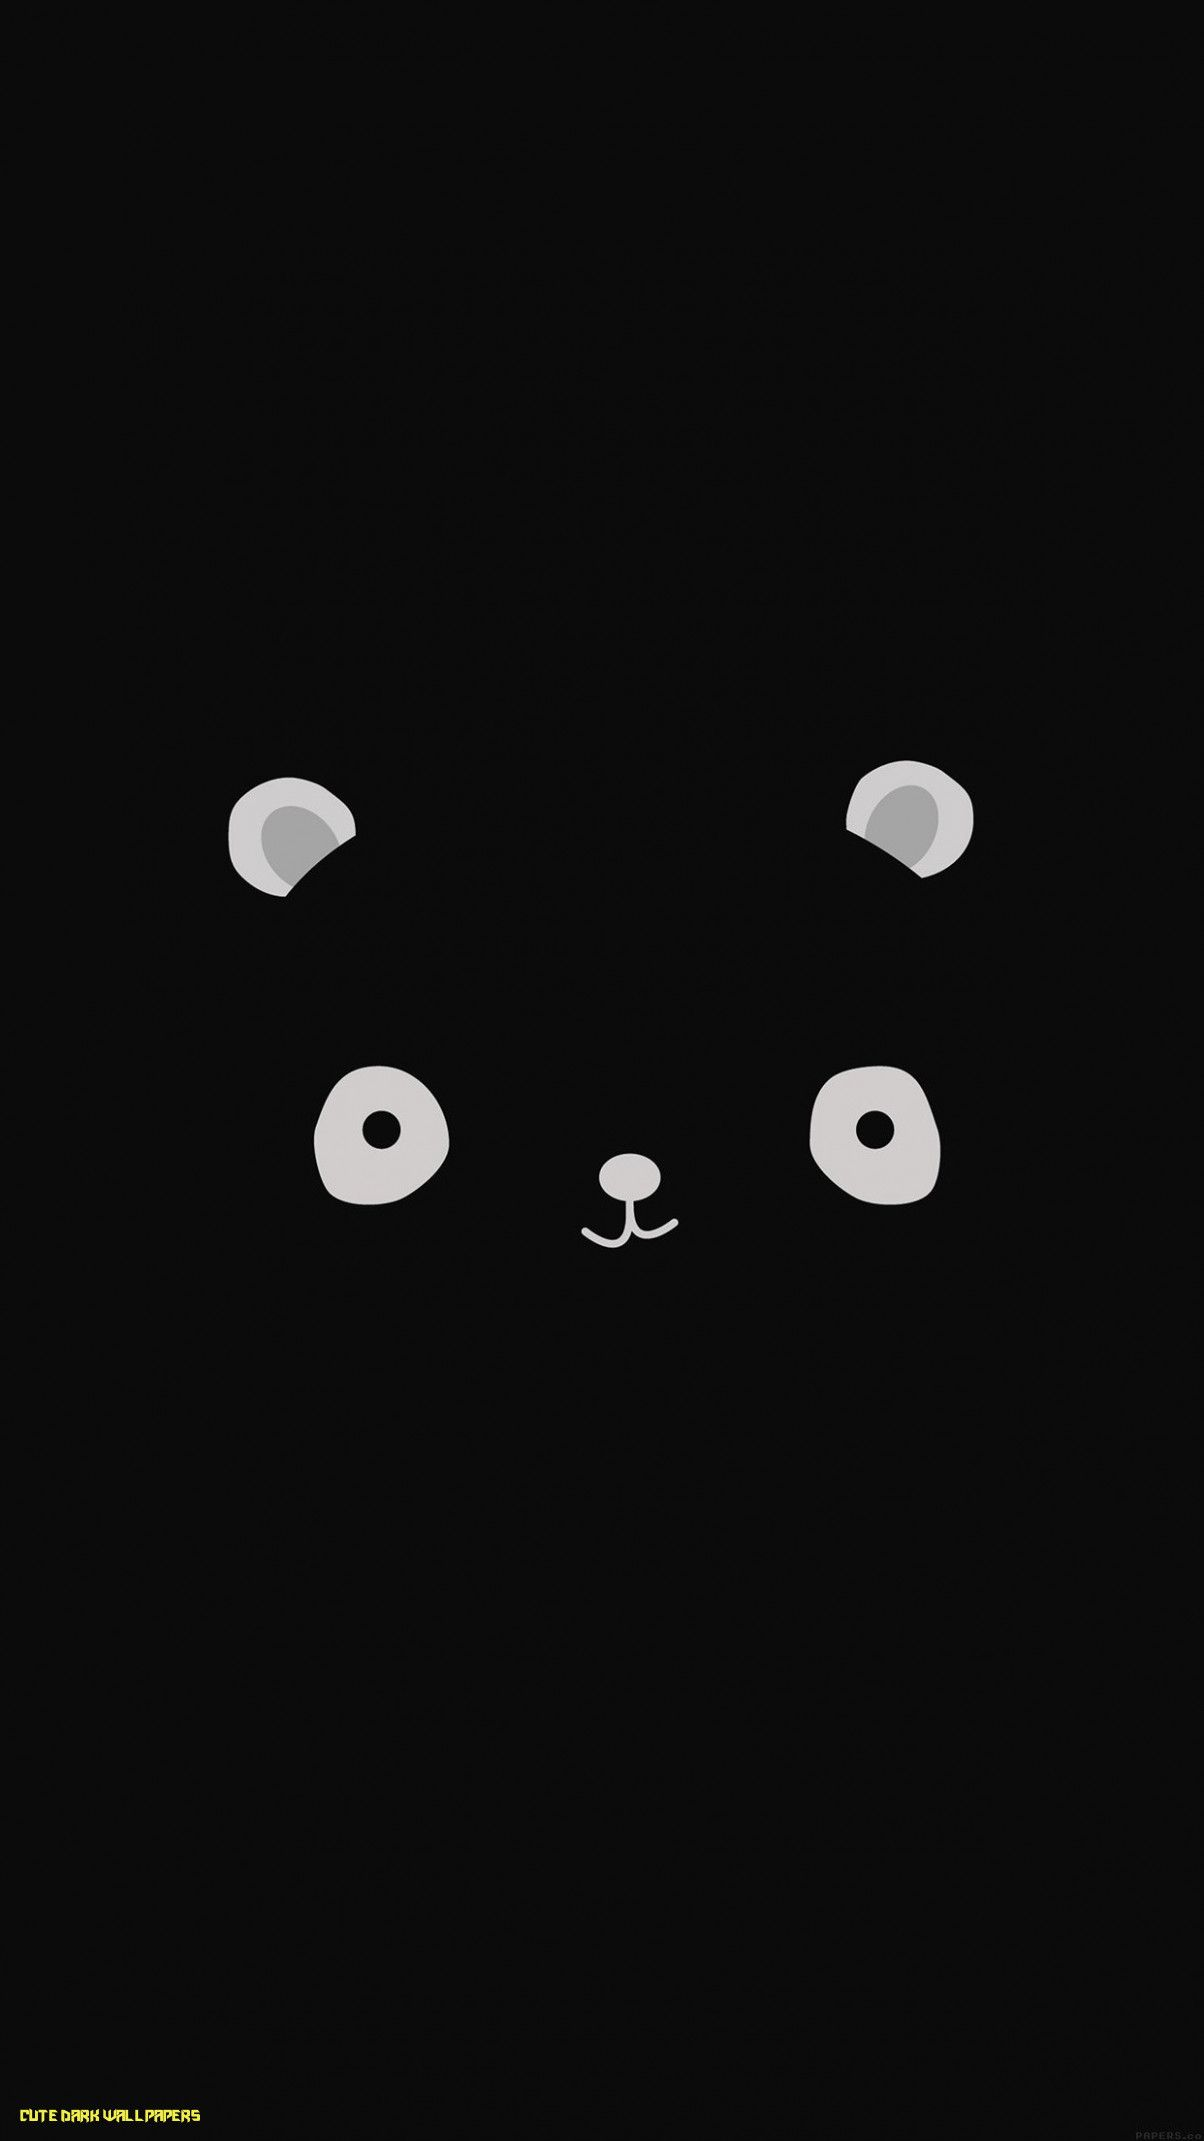 14 Things That Happen When You Are In Cute Dark Wallpapers Cute Dark Wallpapers Https Cute Black Wallpaper Wallpaper Iphone Christmas Iphone Wallpaper Girly